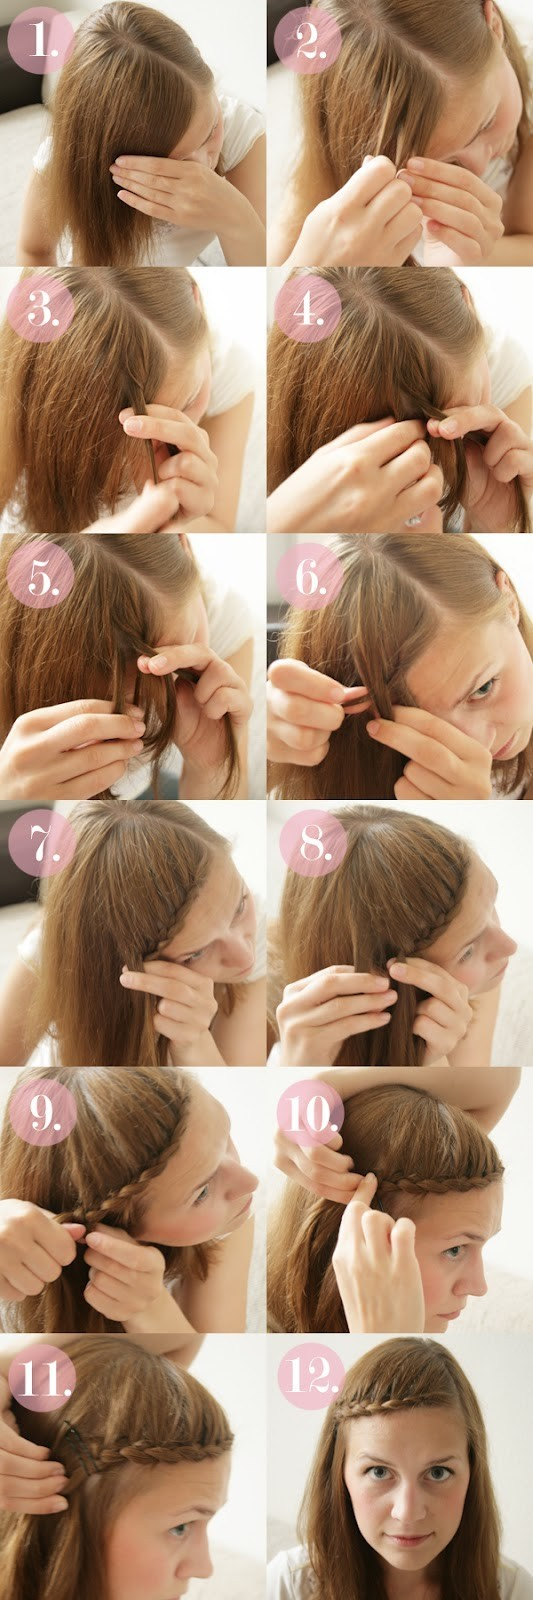 15 Braided Bangs Tutorial Cute Hairstyles